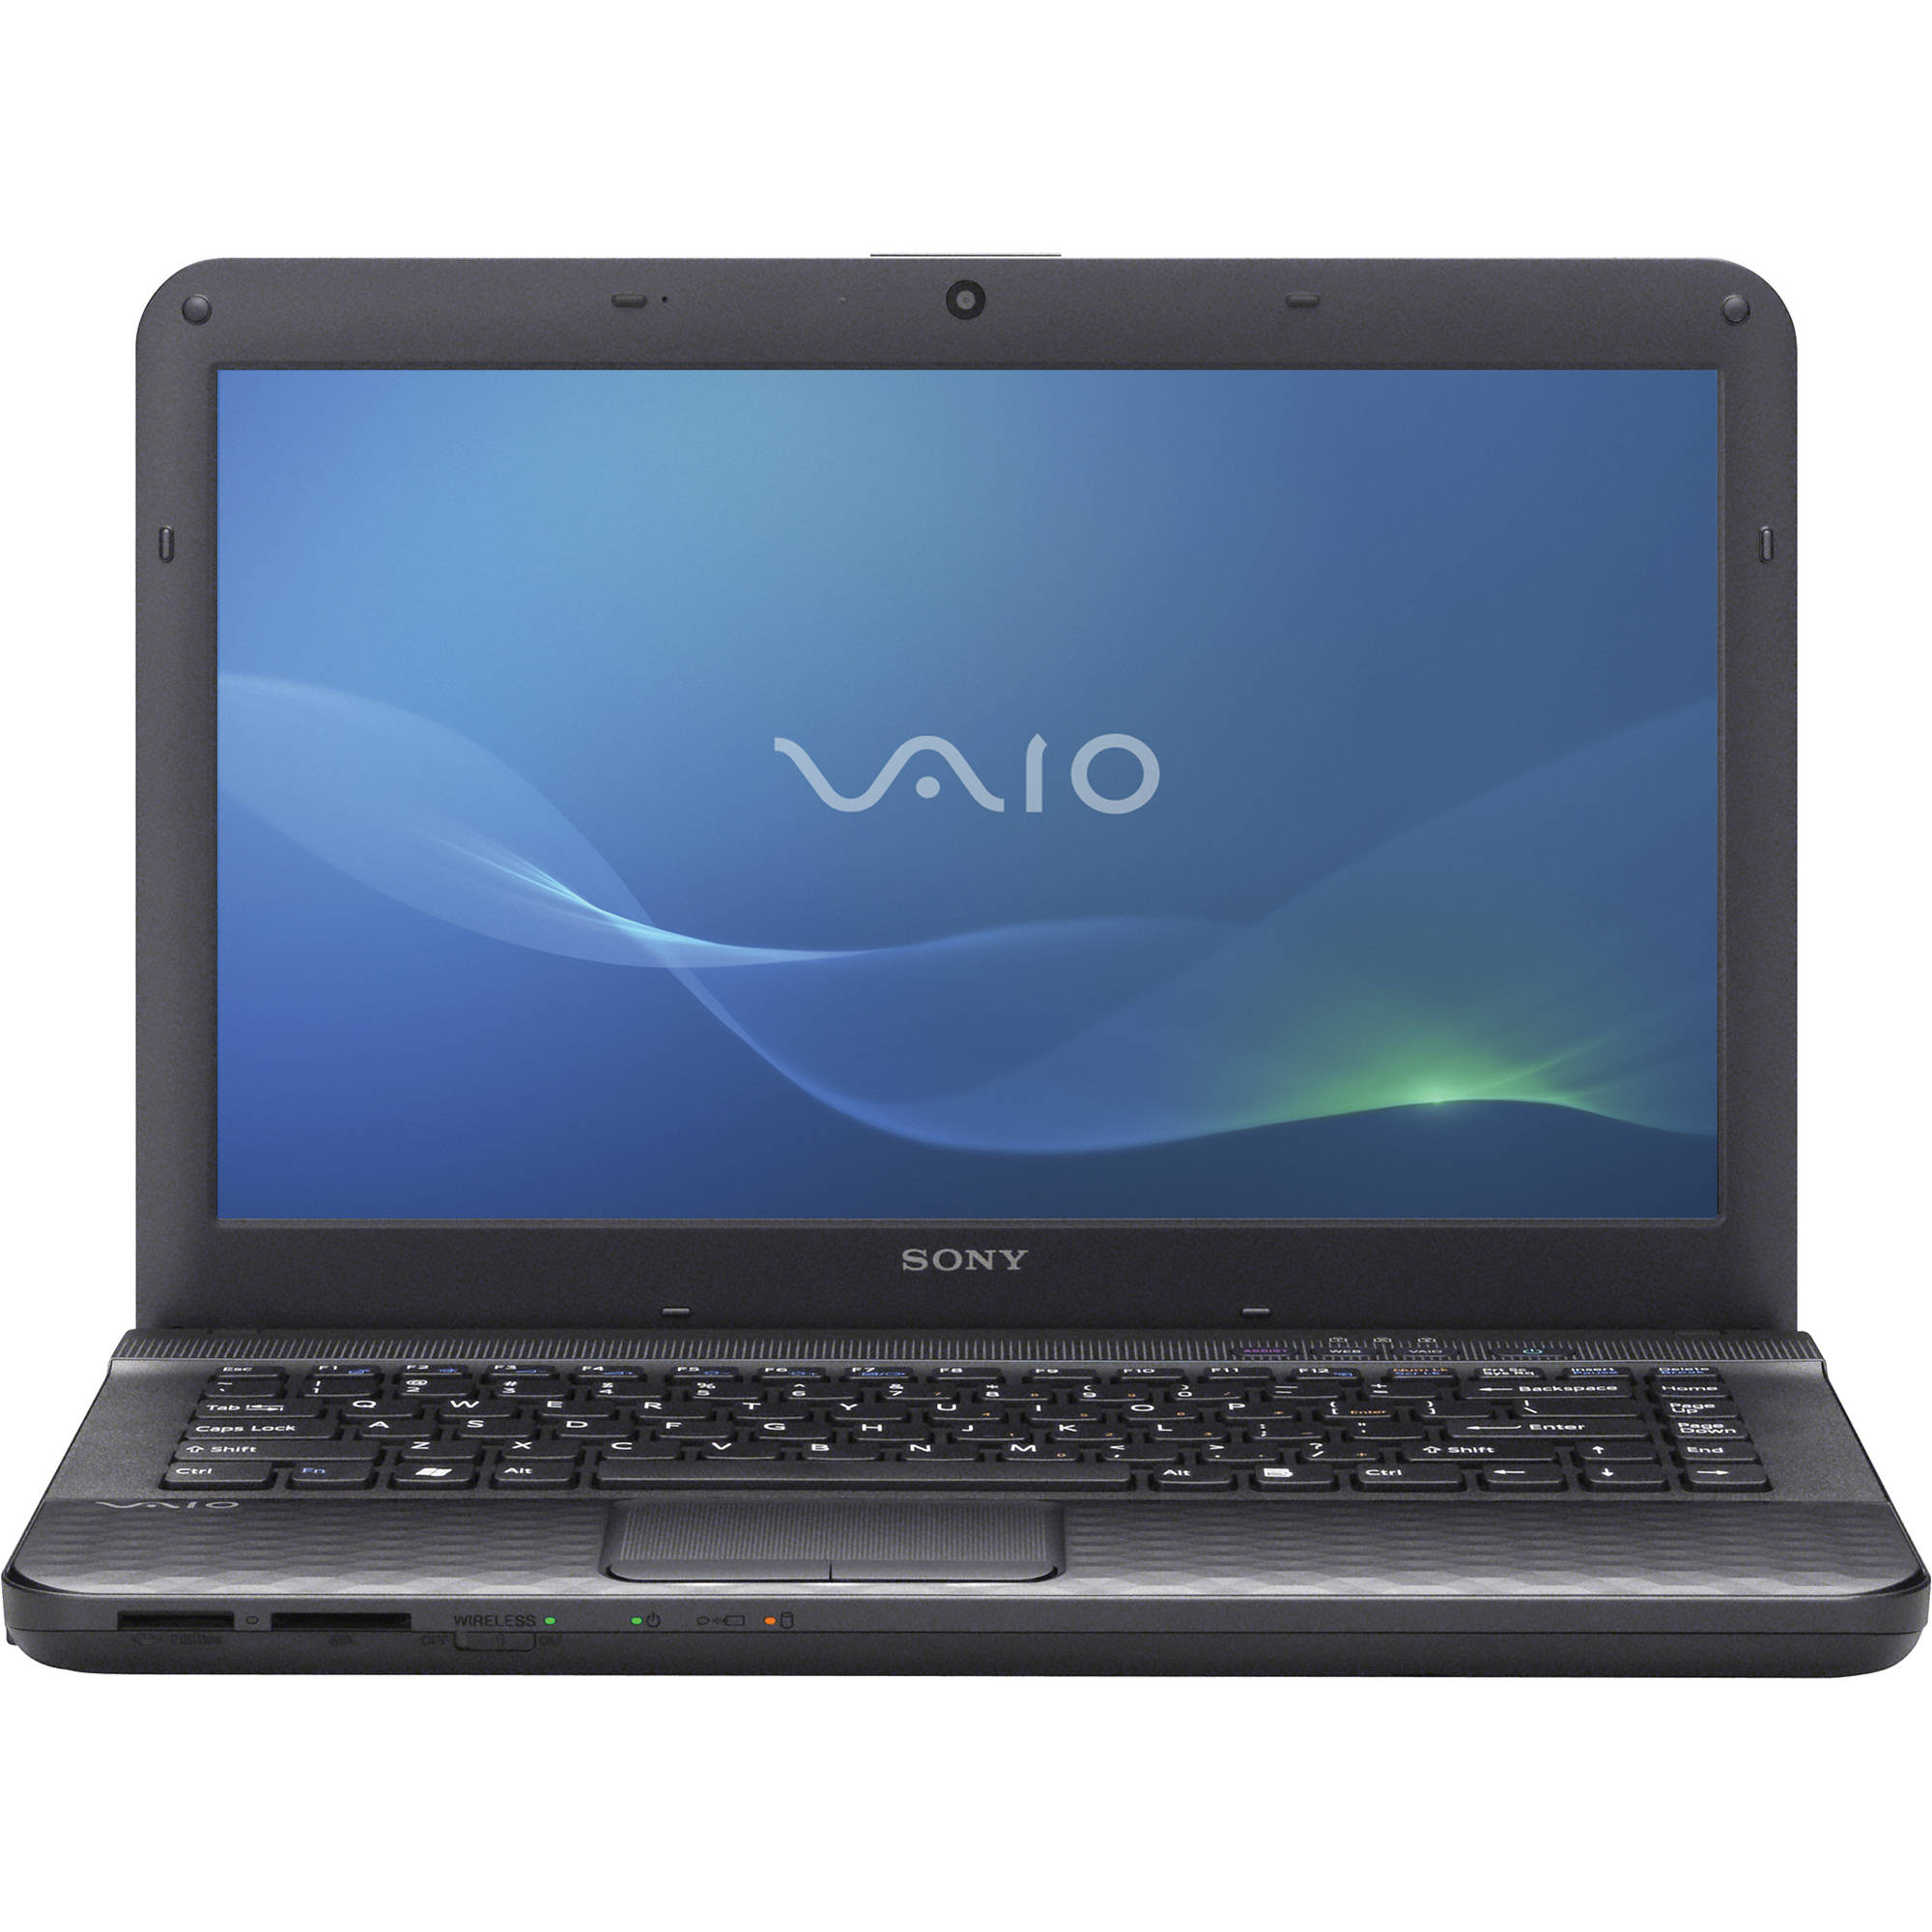 Sony Vaio VPCEG18FX Camera Vista